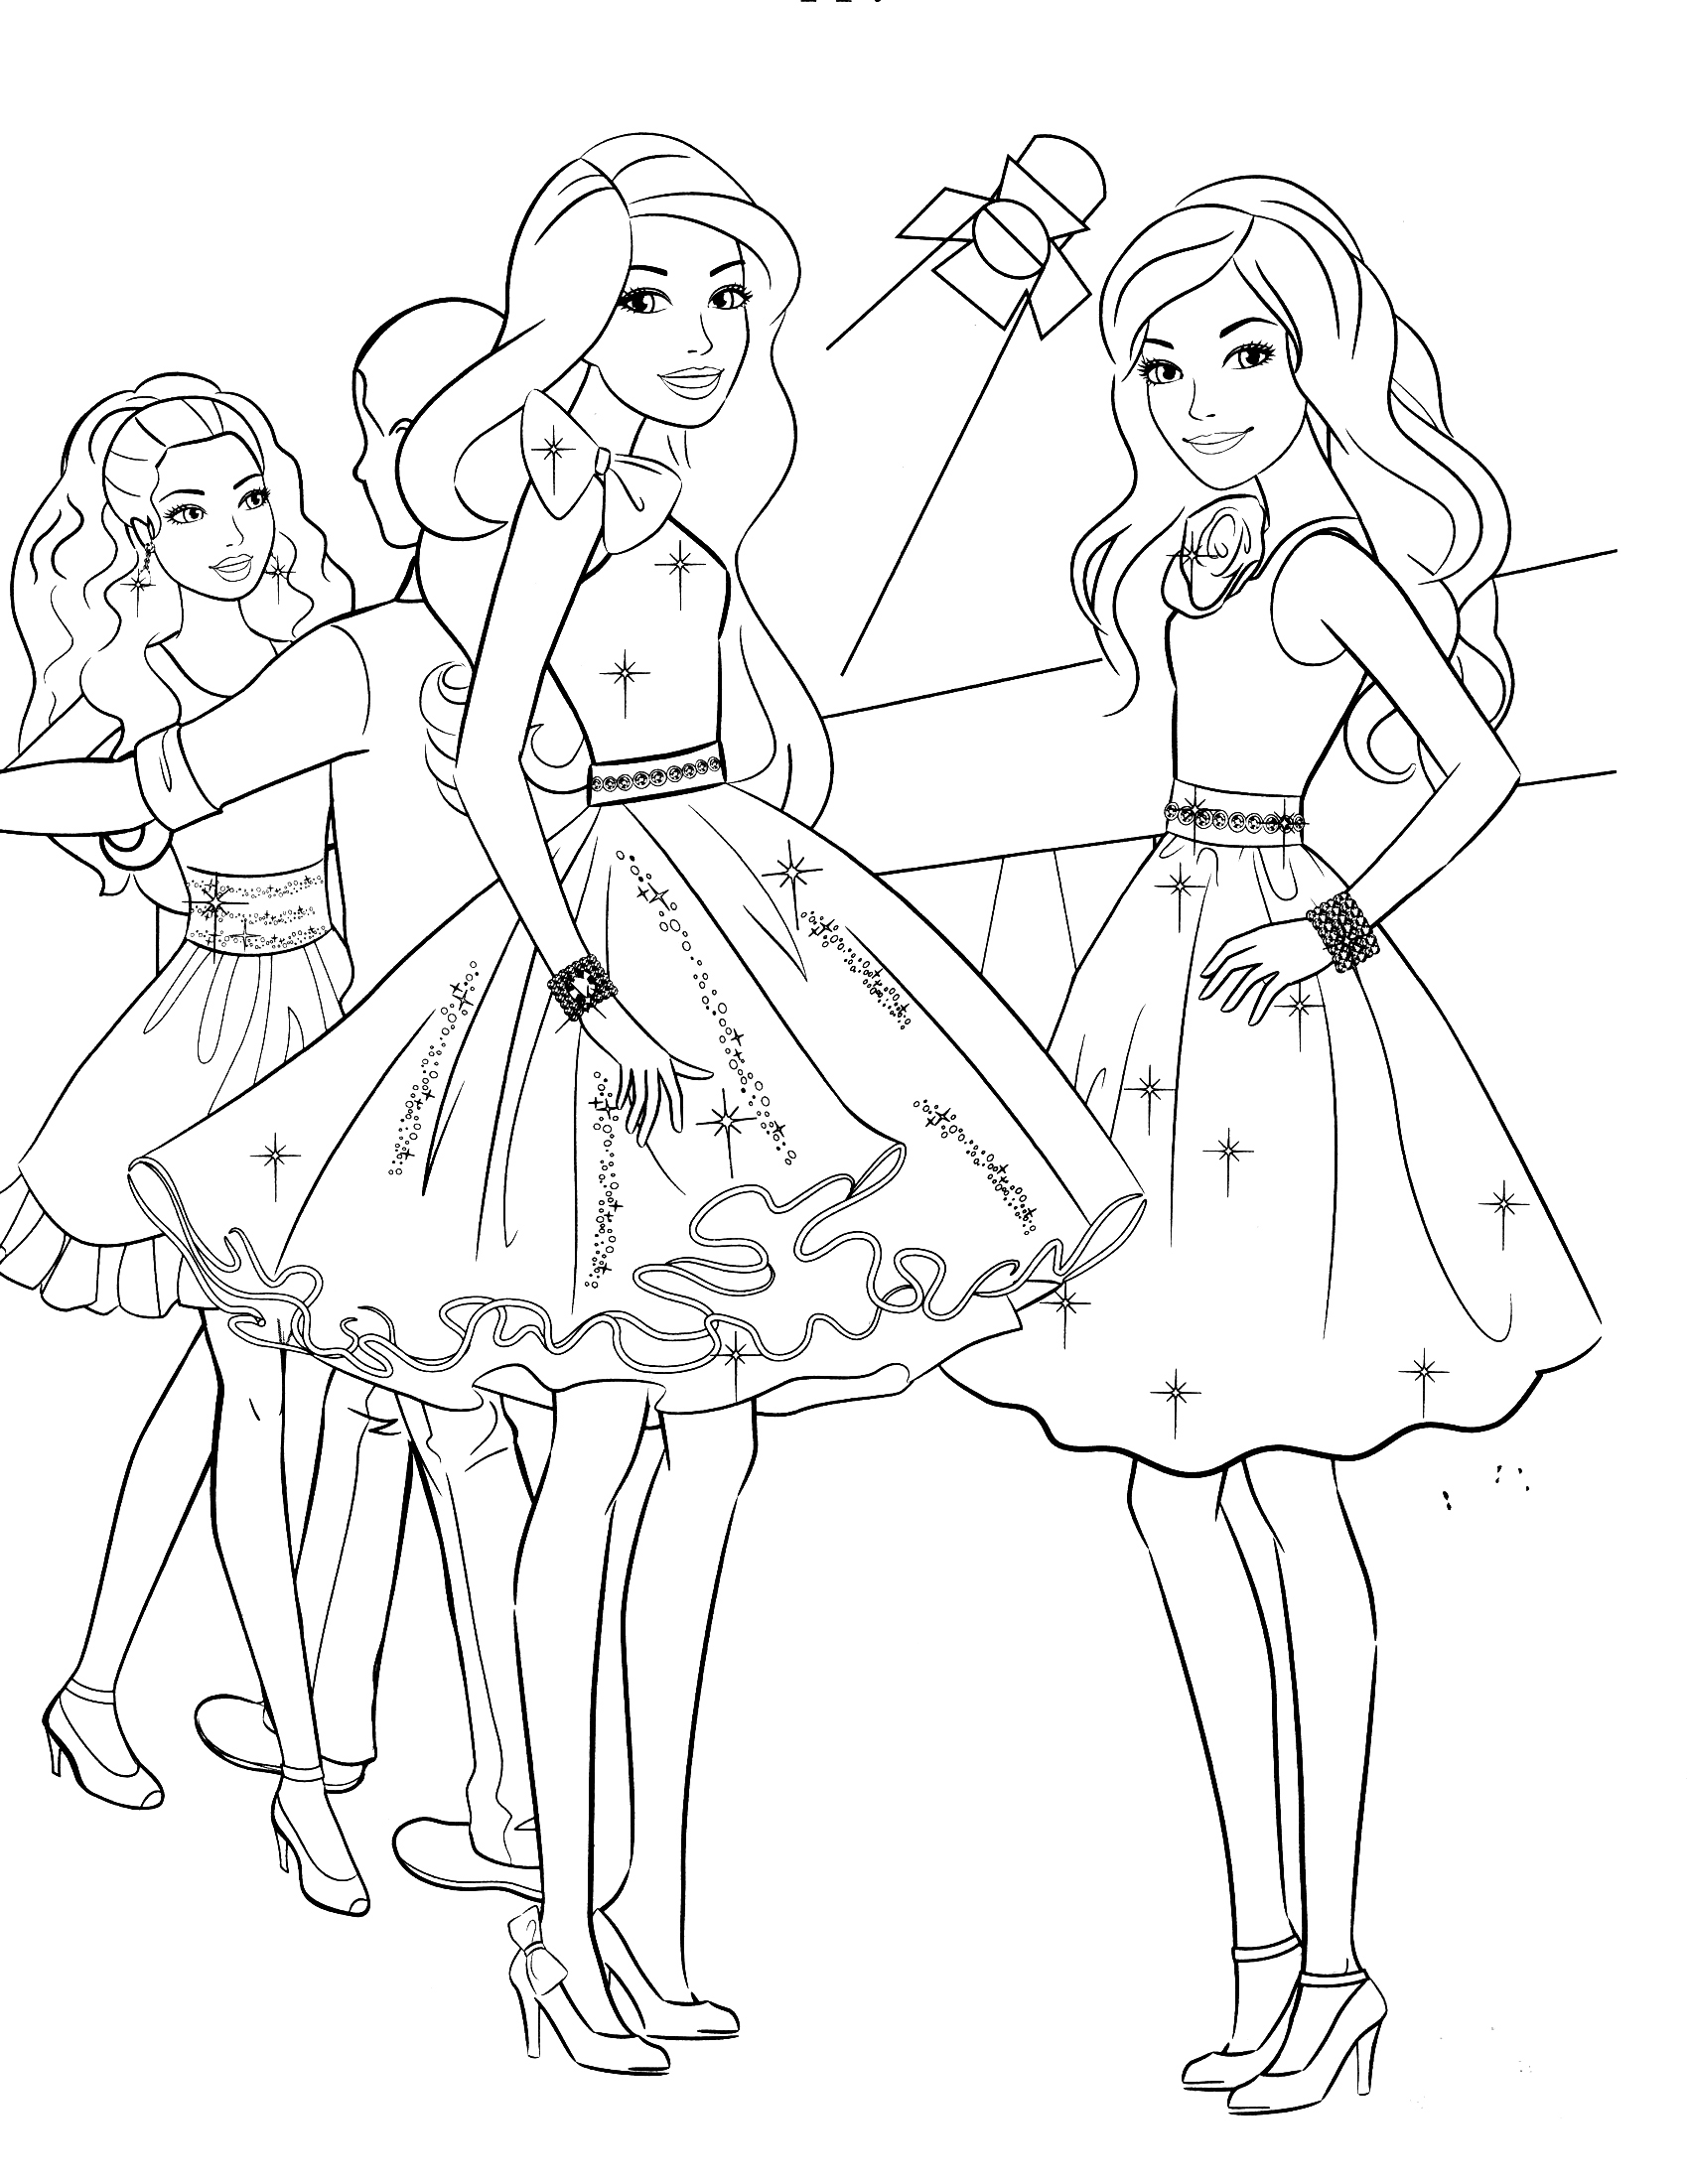 barbie pictures to colour and print httpcoloringcolorcomwp contentthemescoloringpages to and pictures print barbie colour